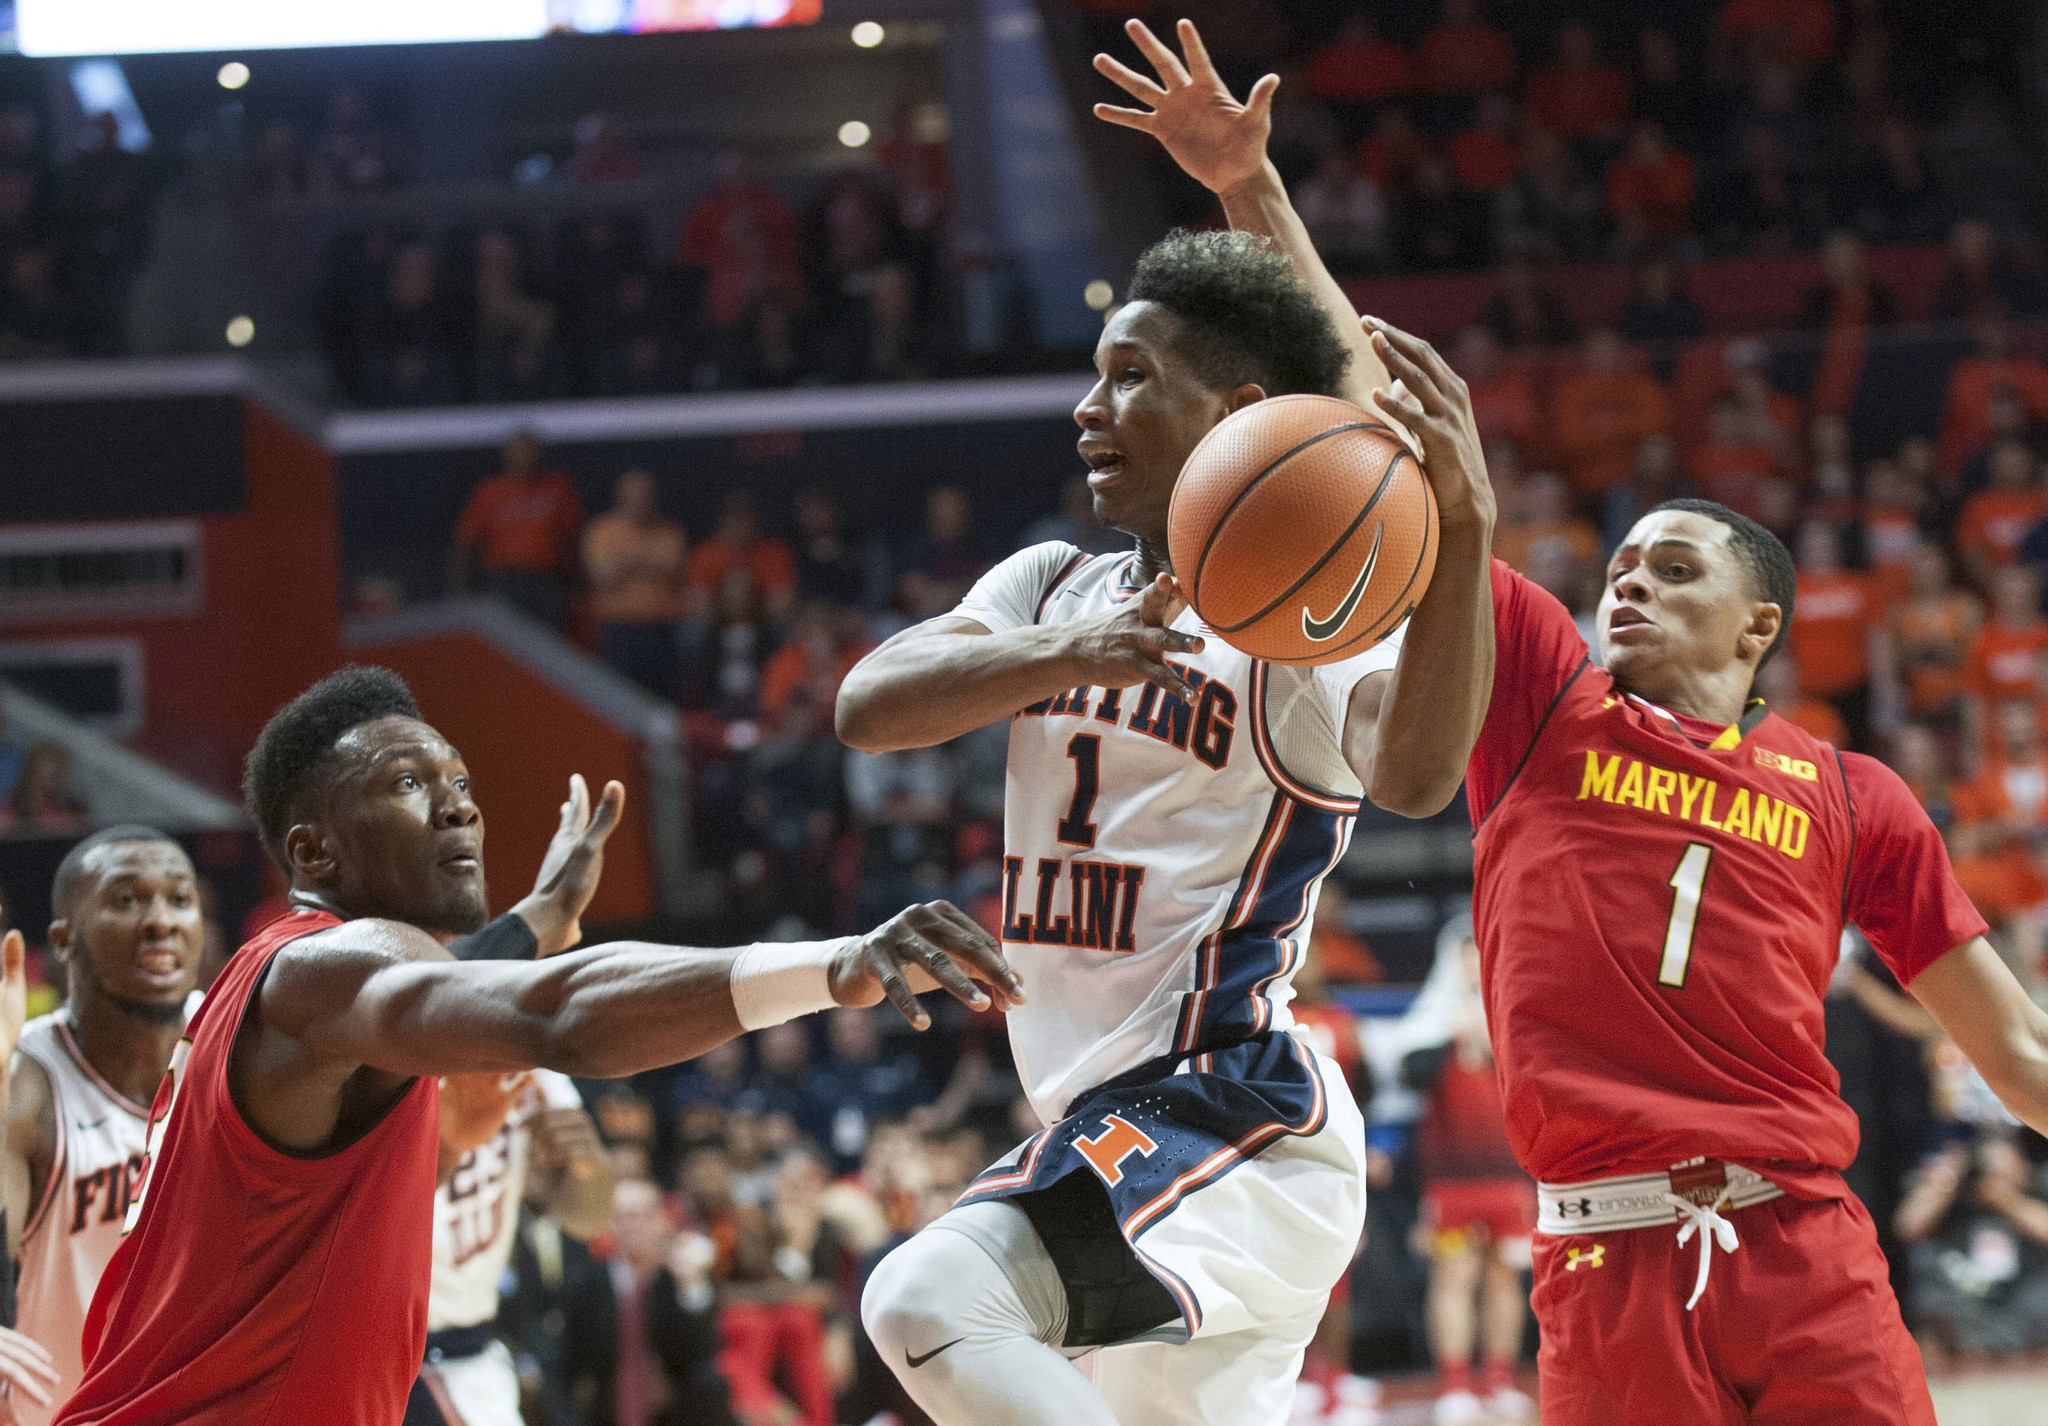 Illinois' crazy comeback ends in 92-91 overtime loss to Maryland